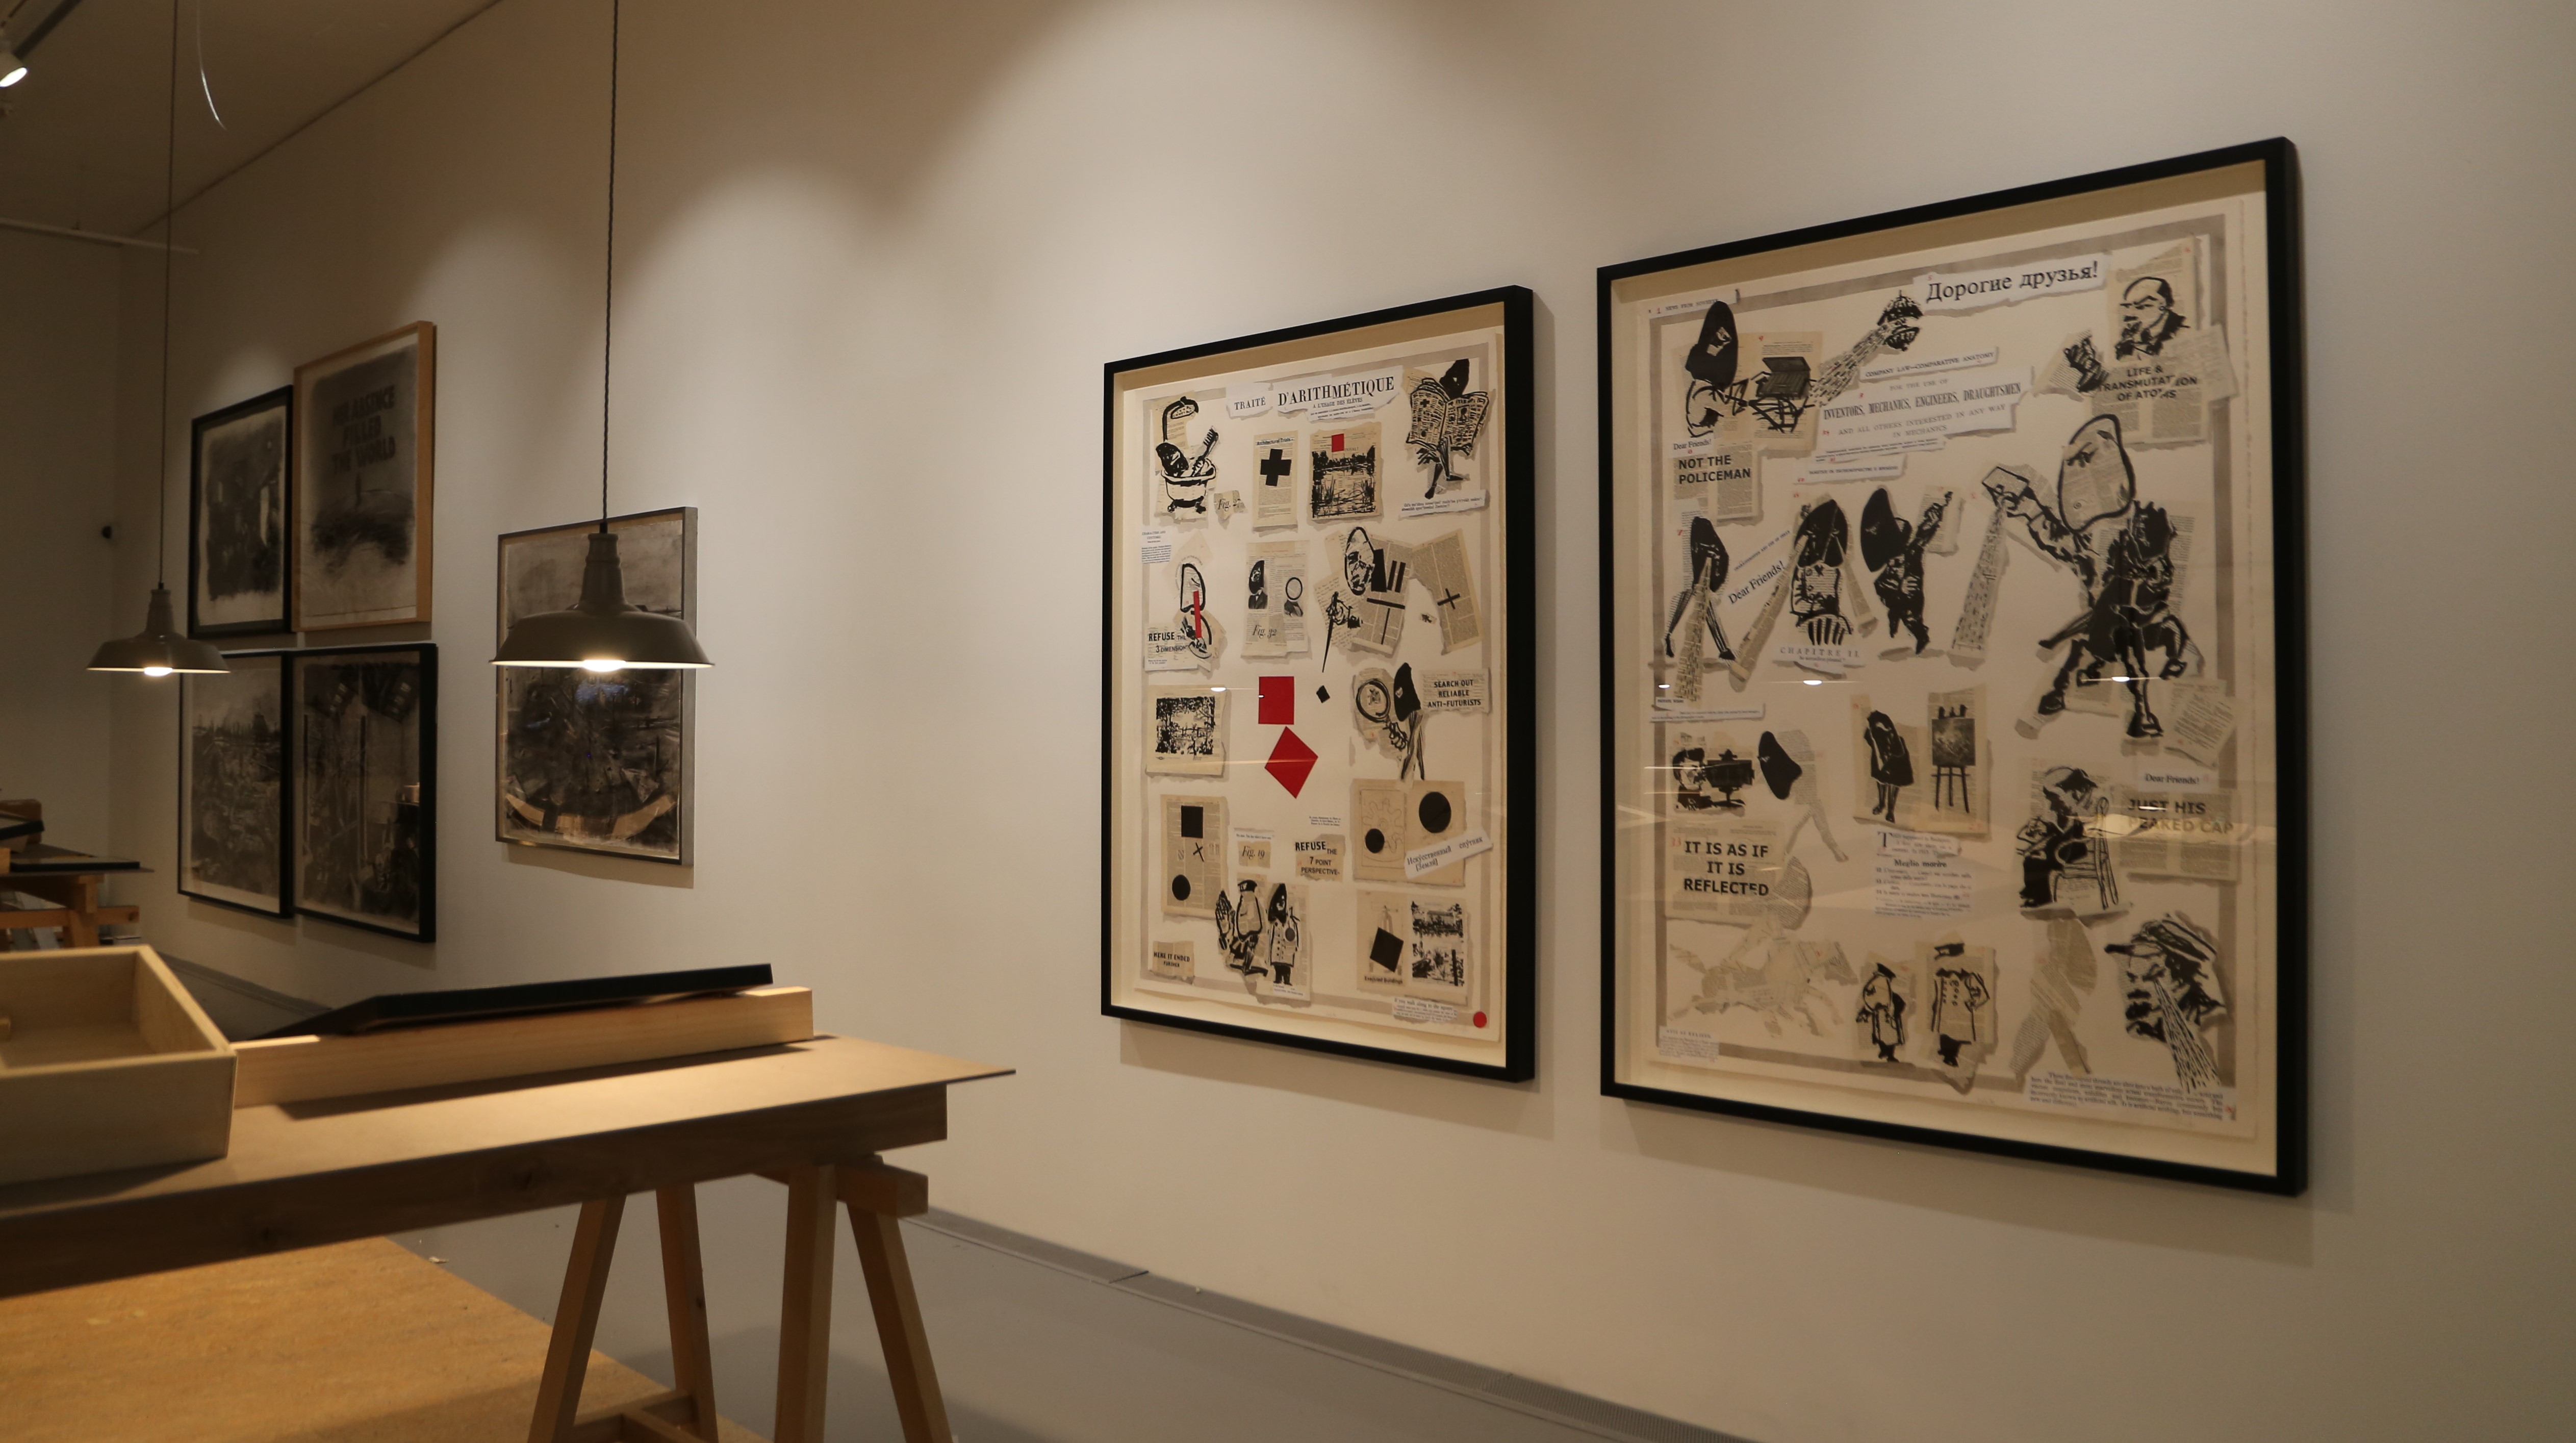 William Kentridge captures history, 'putting drawings to work' in Cape Town